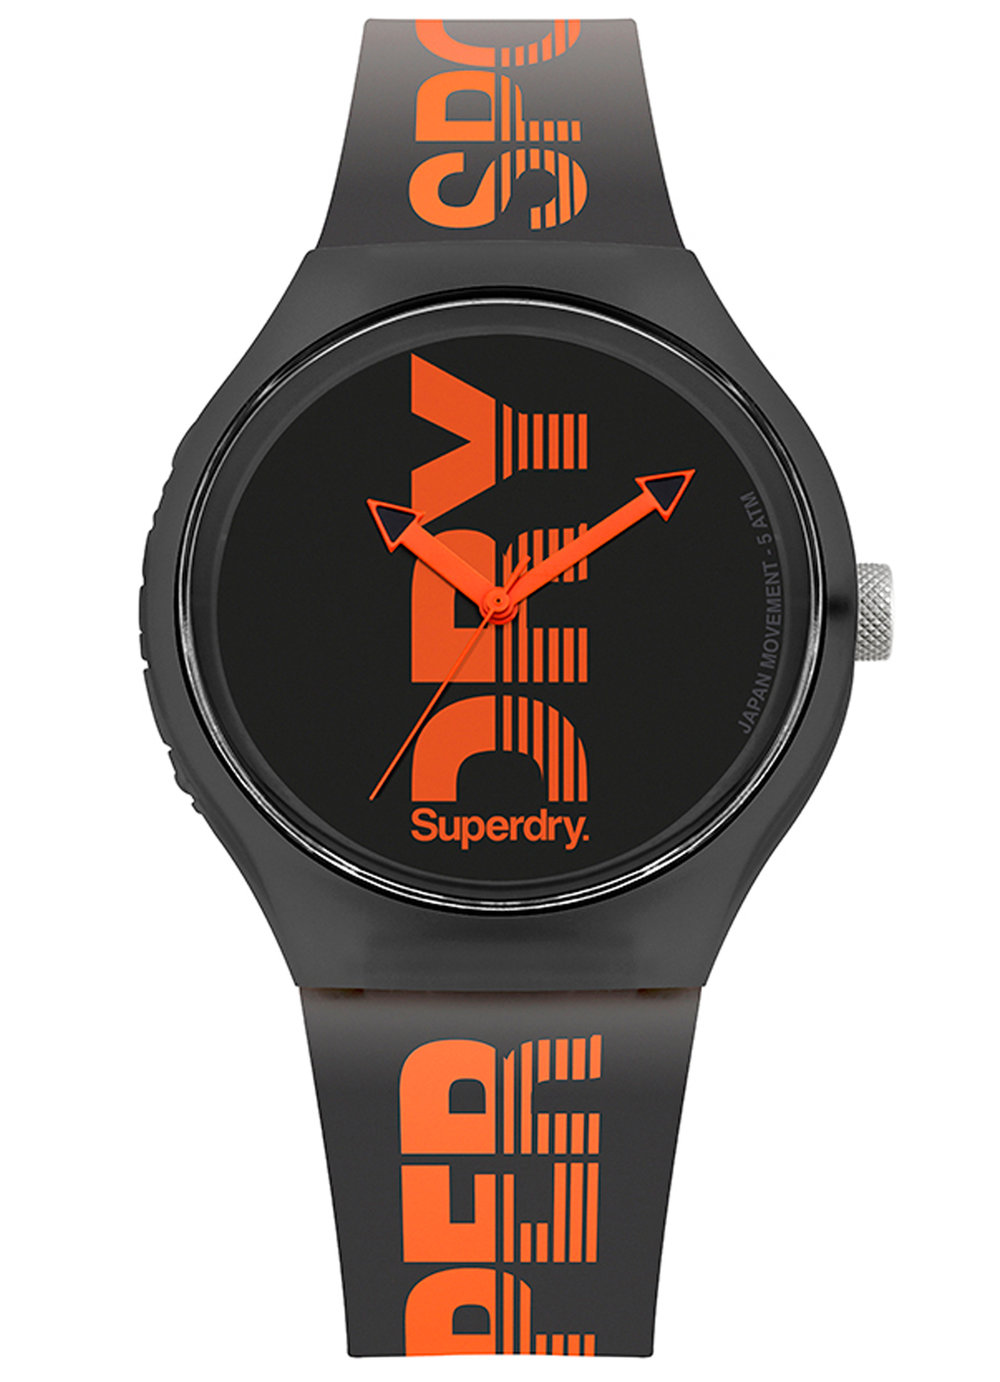 superdry_watches_SDSYG189BO.jpg